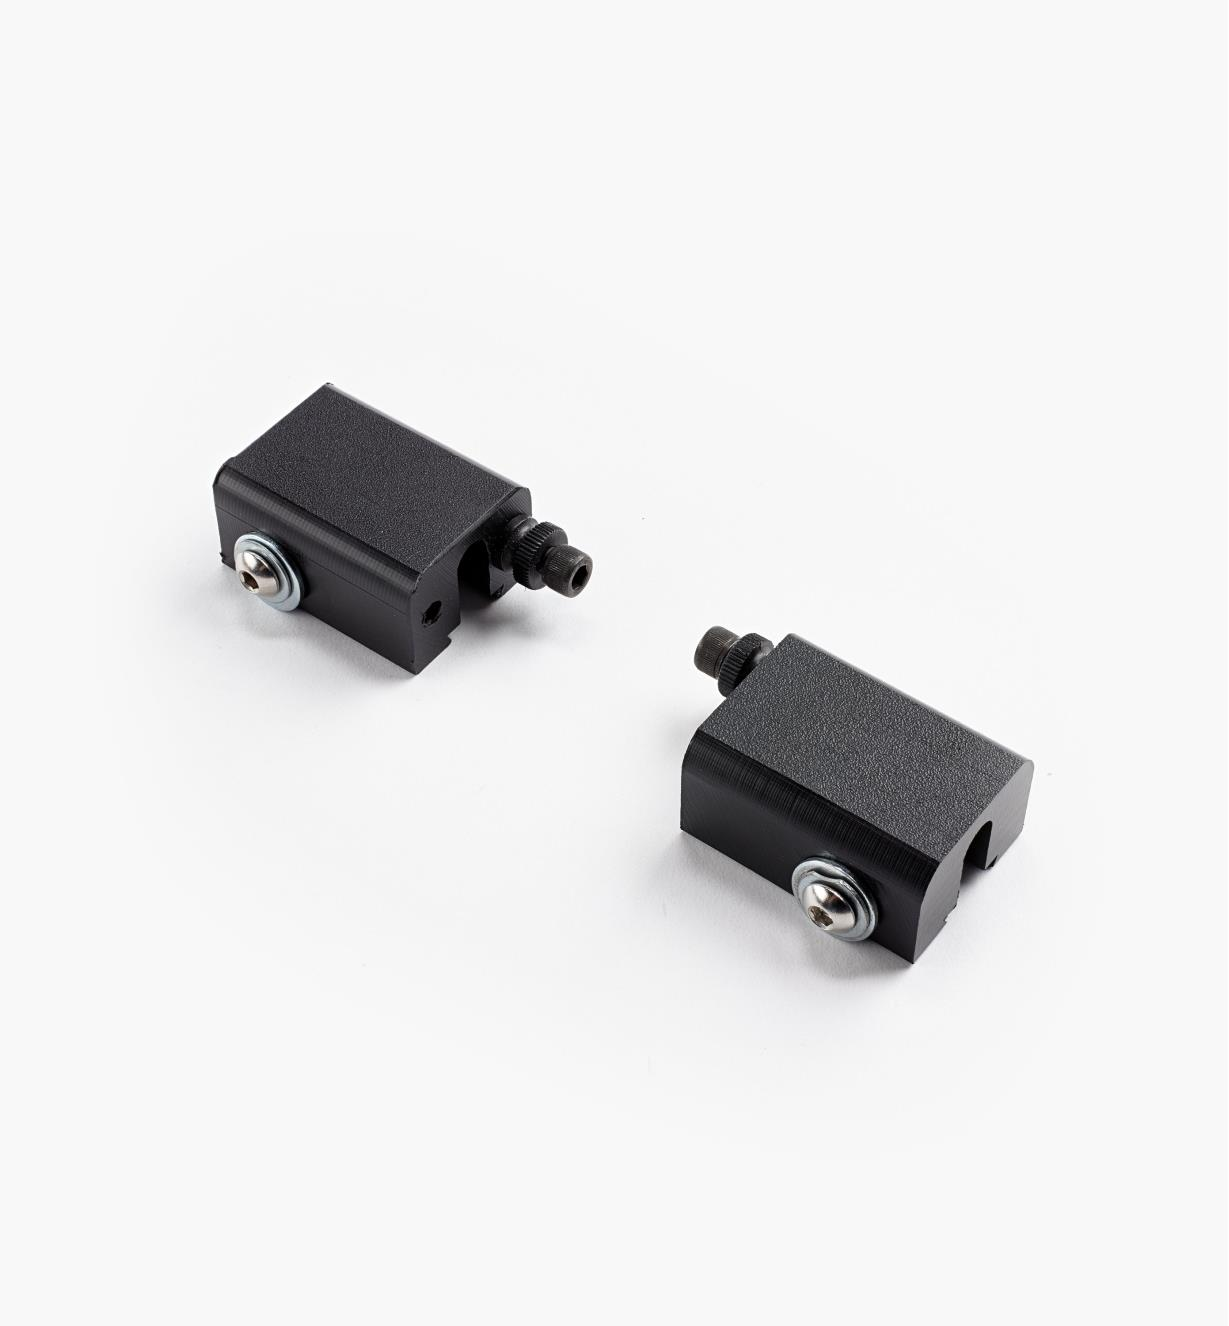 86N5242 - EZ Smart Guide Rail Stops, pr